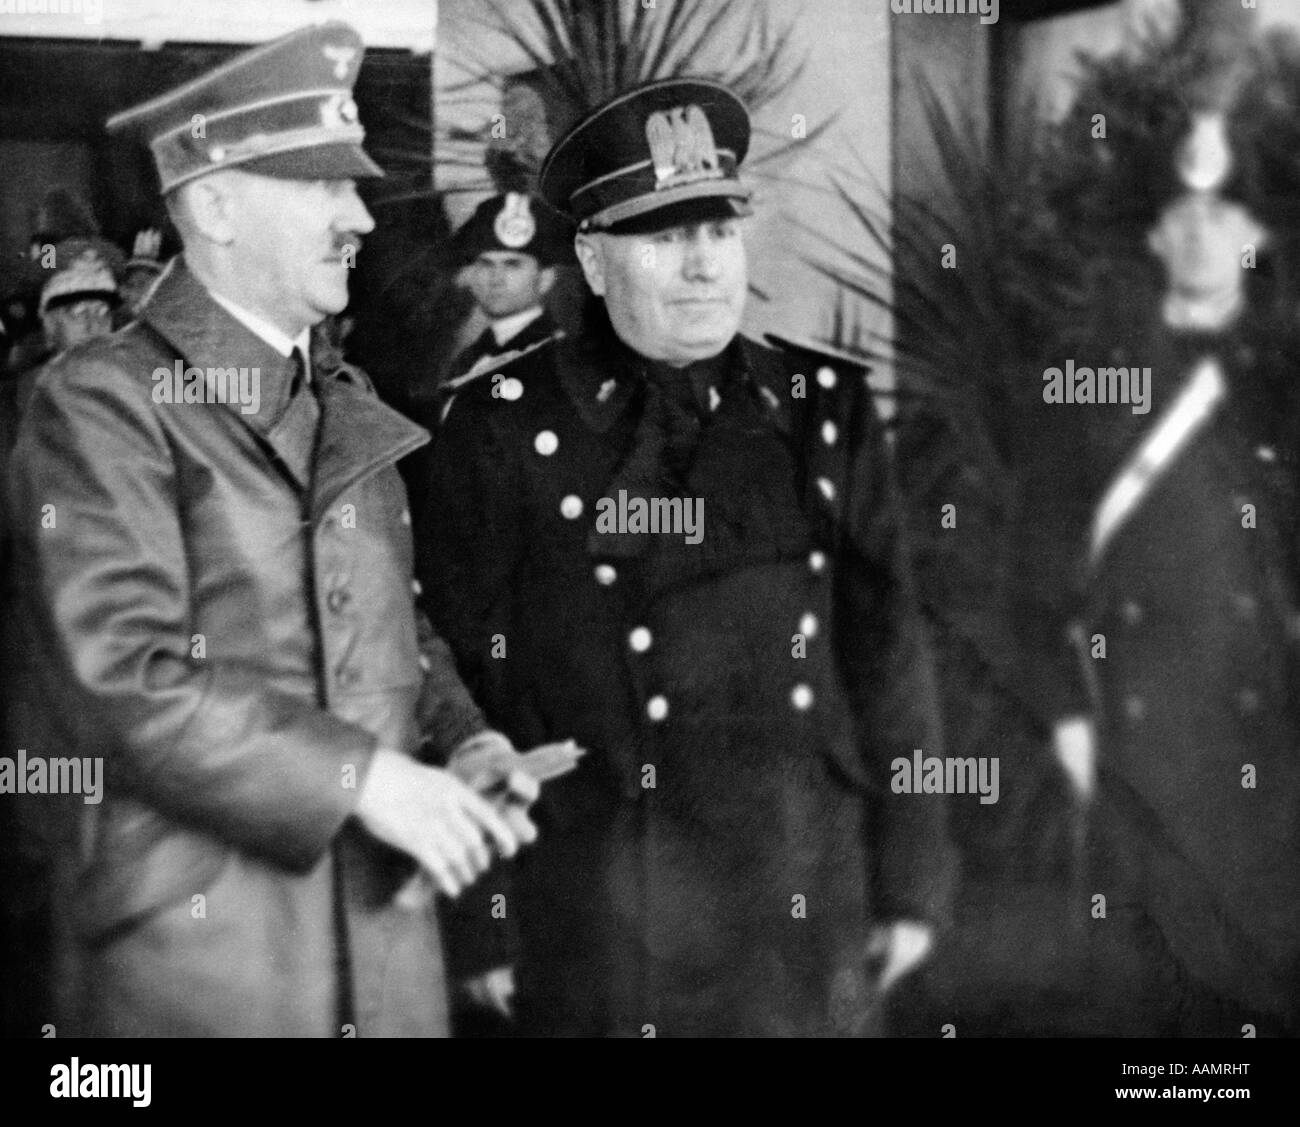 MAY 1939 ADOLPH HITLER AND BENITO MUSSOLINI DURING HITLER'S VISIT TO ITALY - Stock Image